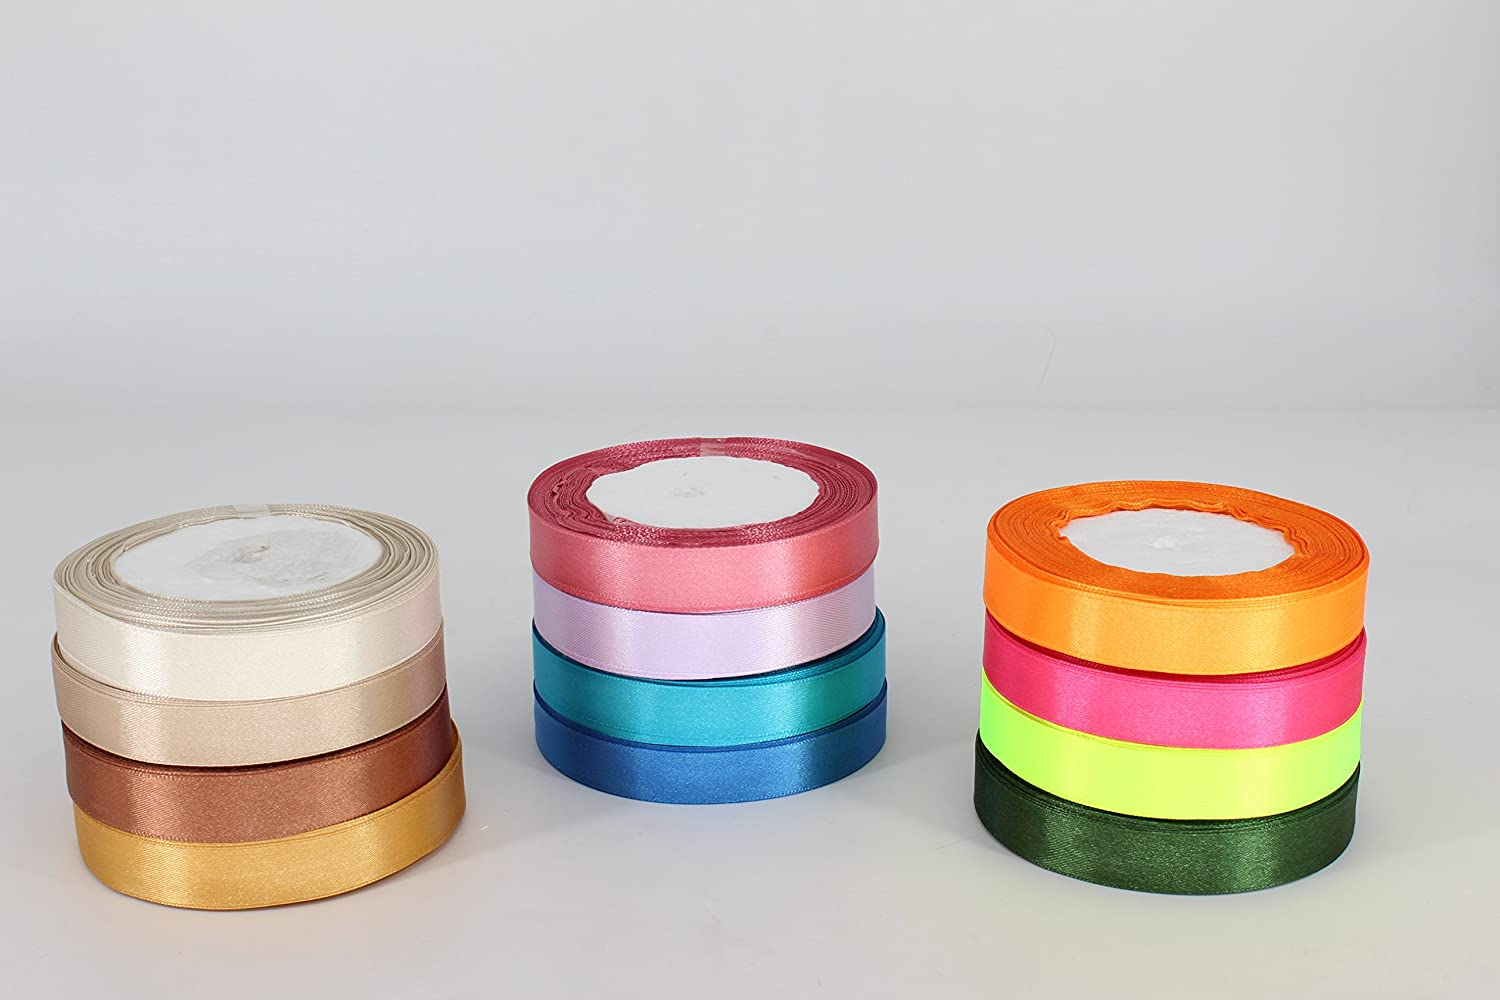 Trimming Shop 6mm Satin Ribbon Rolls - VALUE PACK - (13 rolls for the price of 7) - Polyester Ribbons for Fabric, Arts and Crafts, Bows, Wedding, Birthday Cake and Home Decoration by (Option 1)